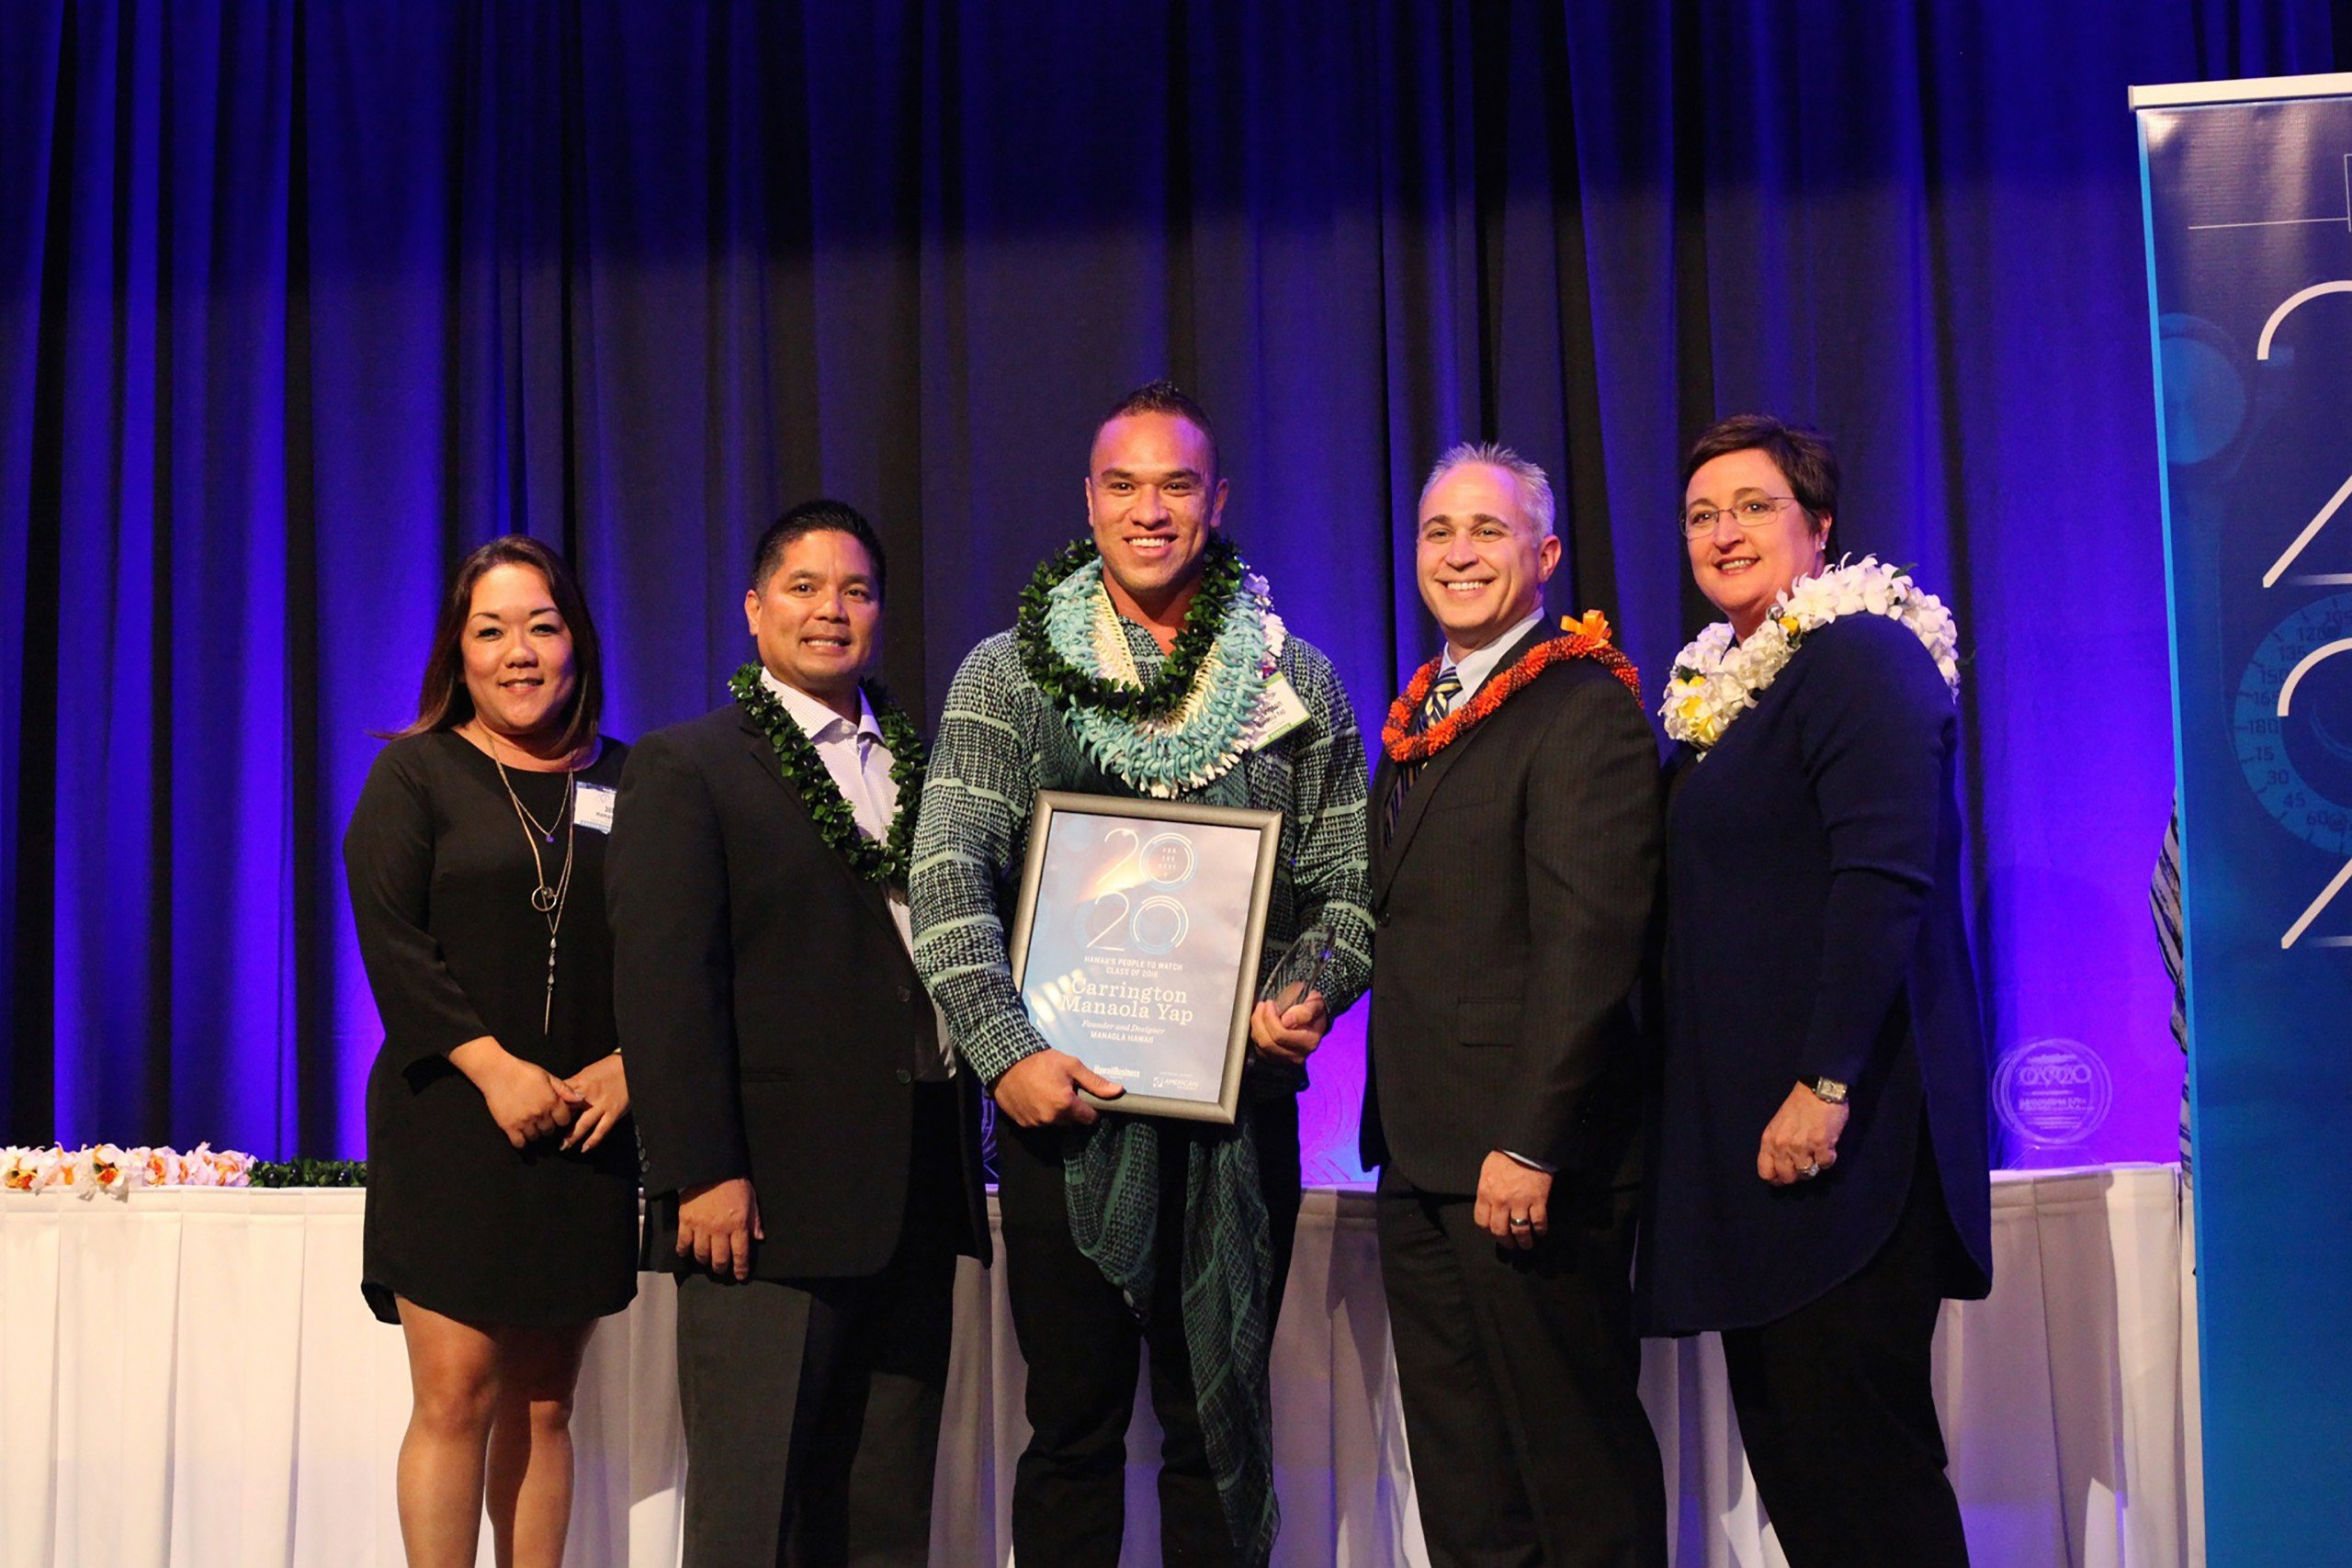 Carrington Manaola Yap in the middle of being honored as one of the 20 For the Next 20. Photo: Michelle